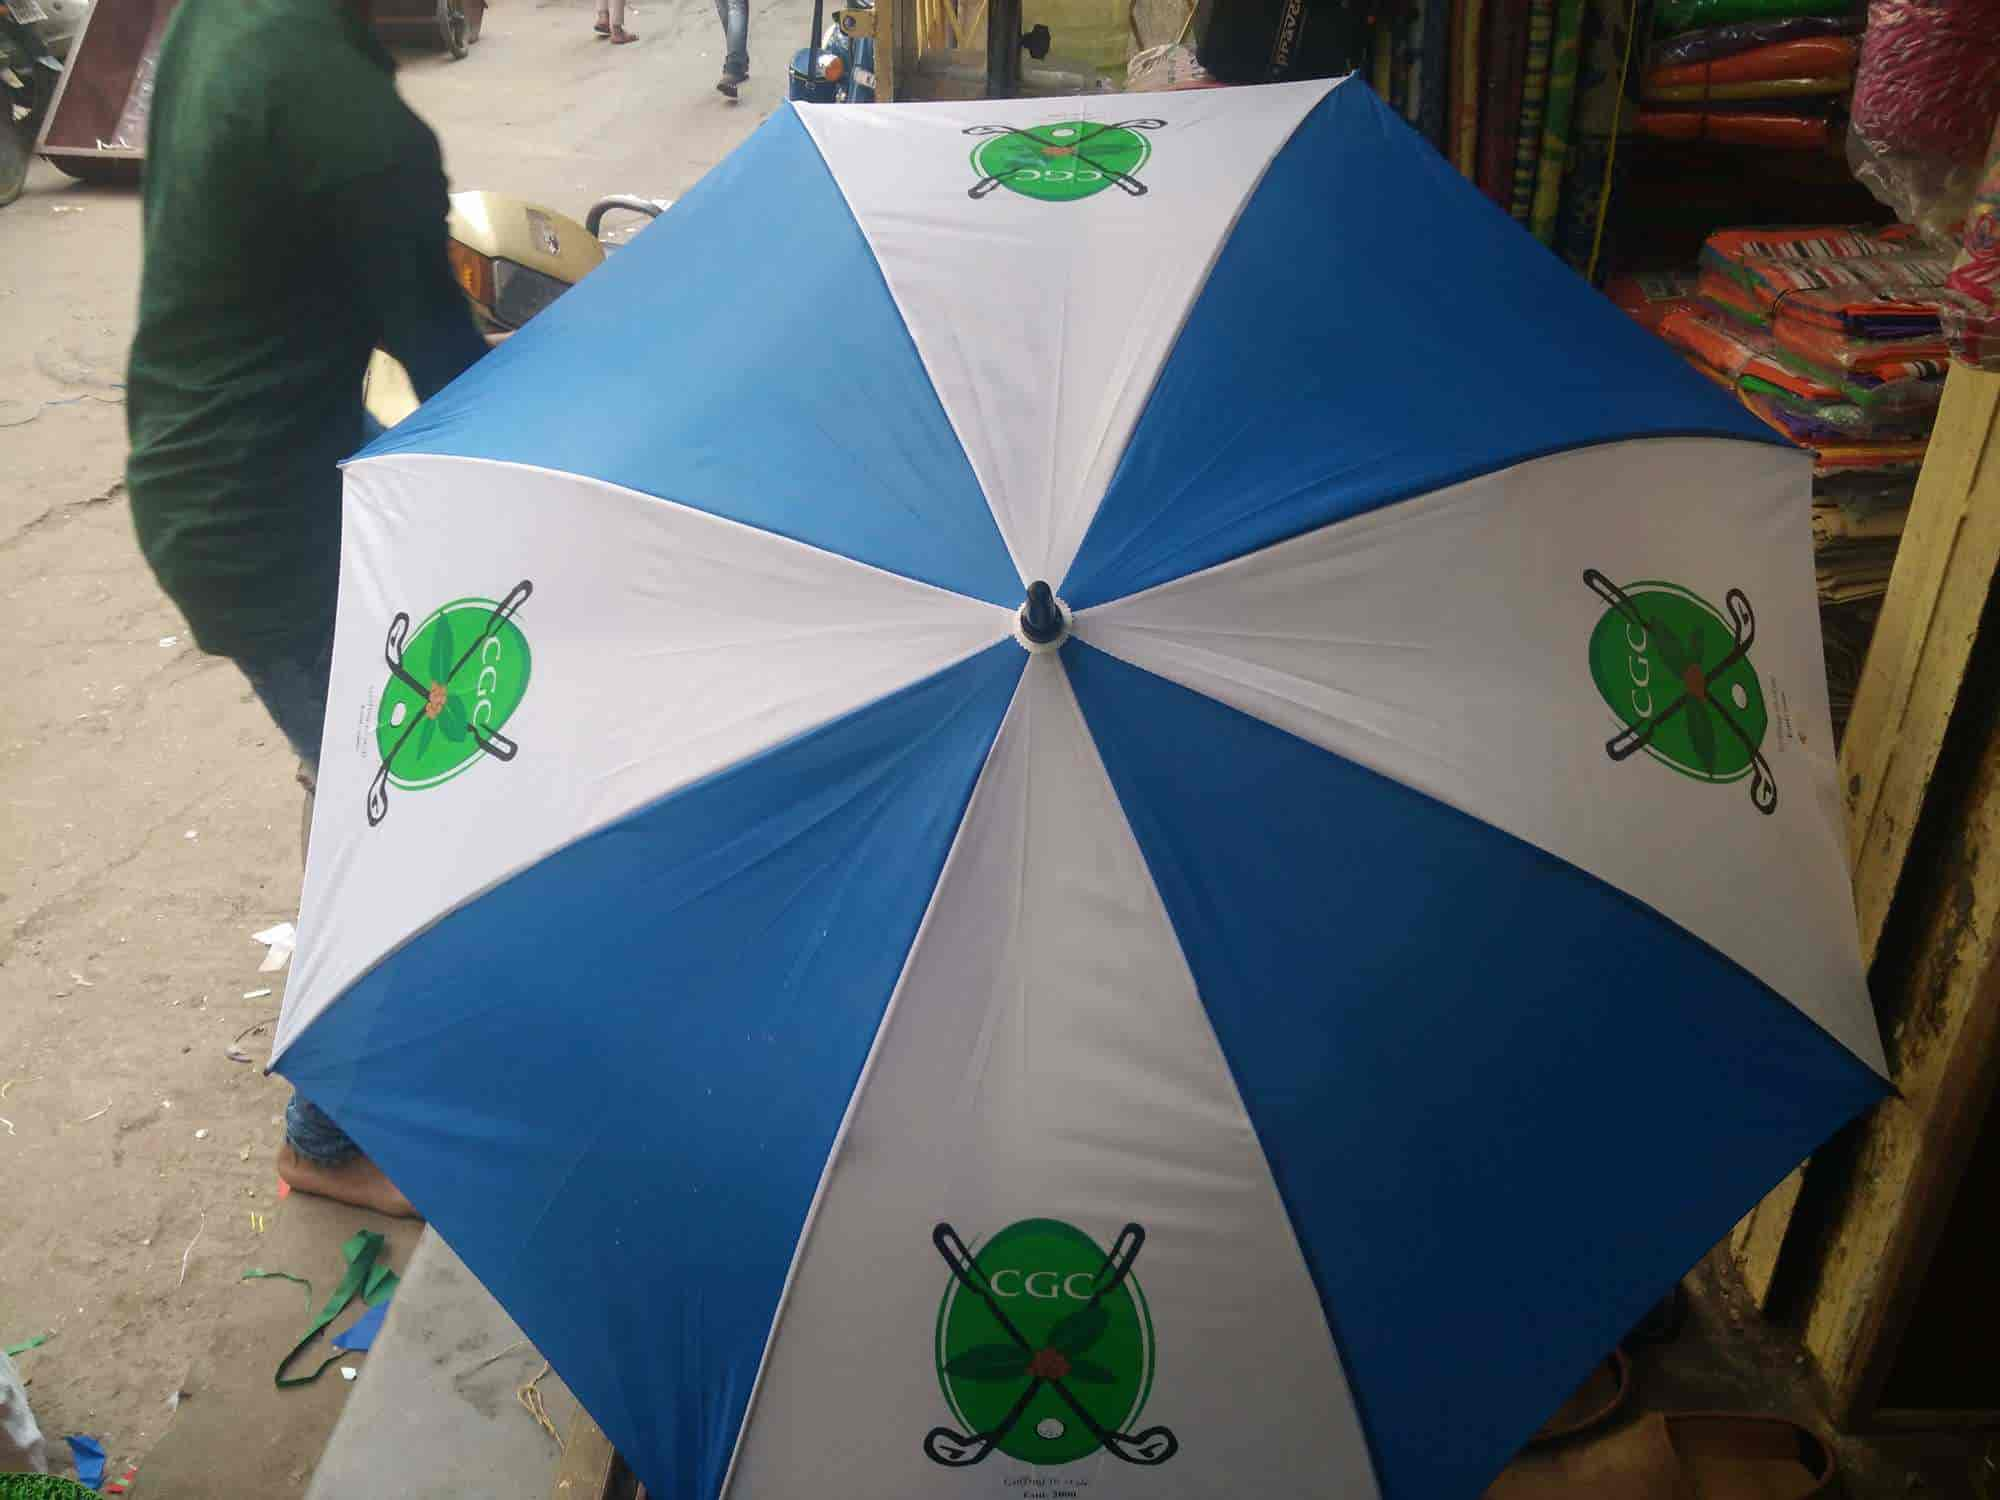 9abaea0349ee8 Praveen Umbrella Industries, Kumbarpet Road - Umbrella Dealers in Bangalore  - Justdial